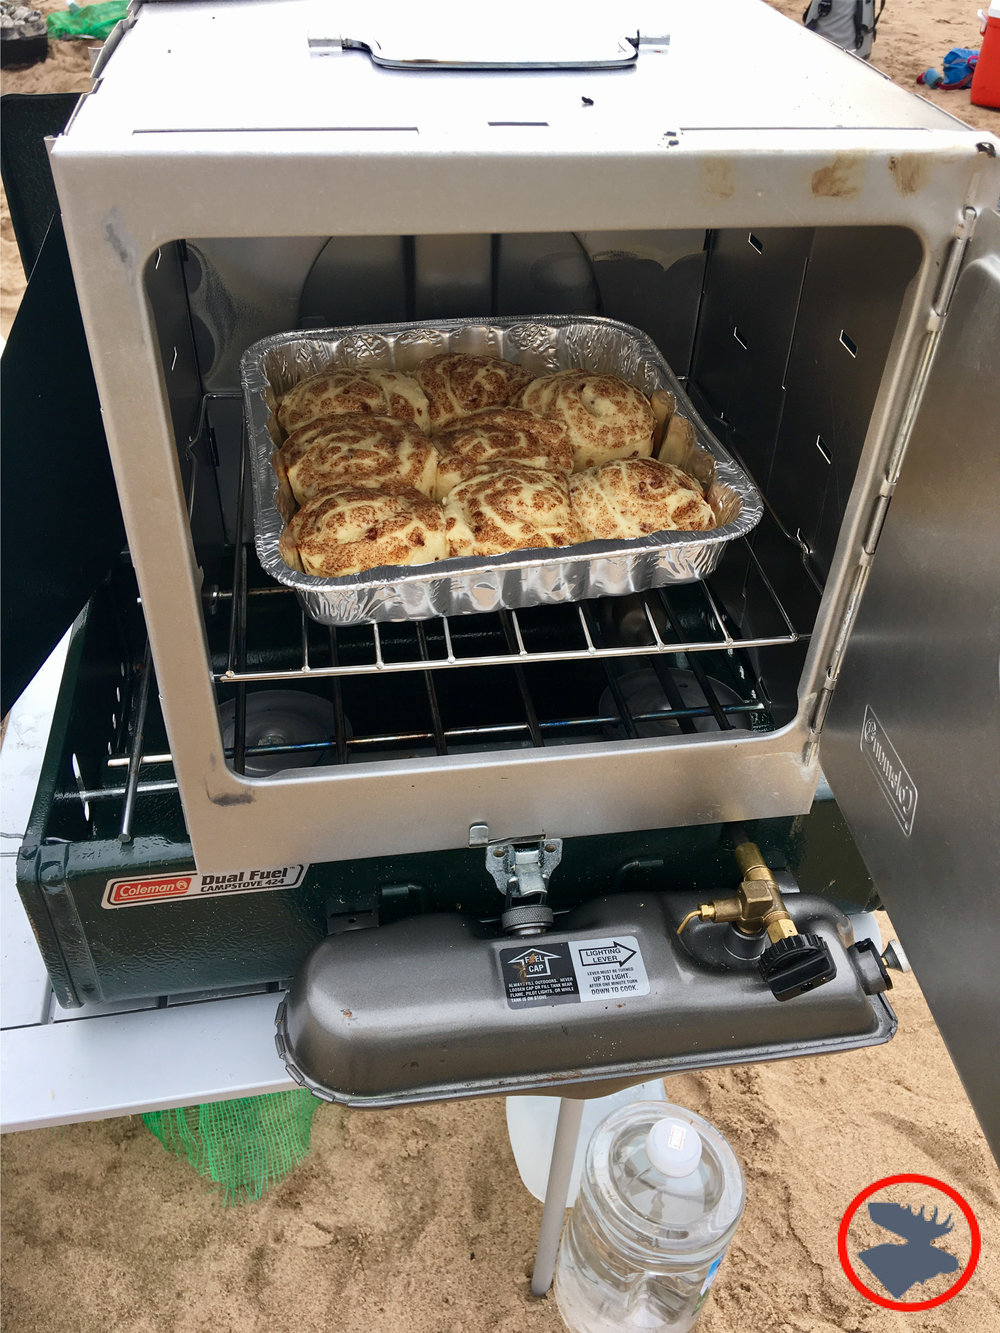 BMP-Post_Expedition-Log_WI-River_Buns-in-Oven_8-18-17.jpg